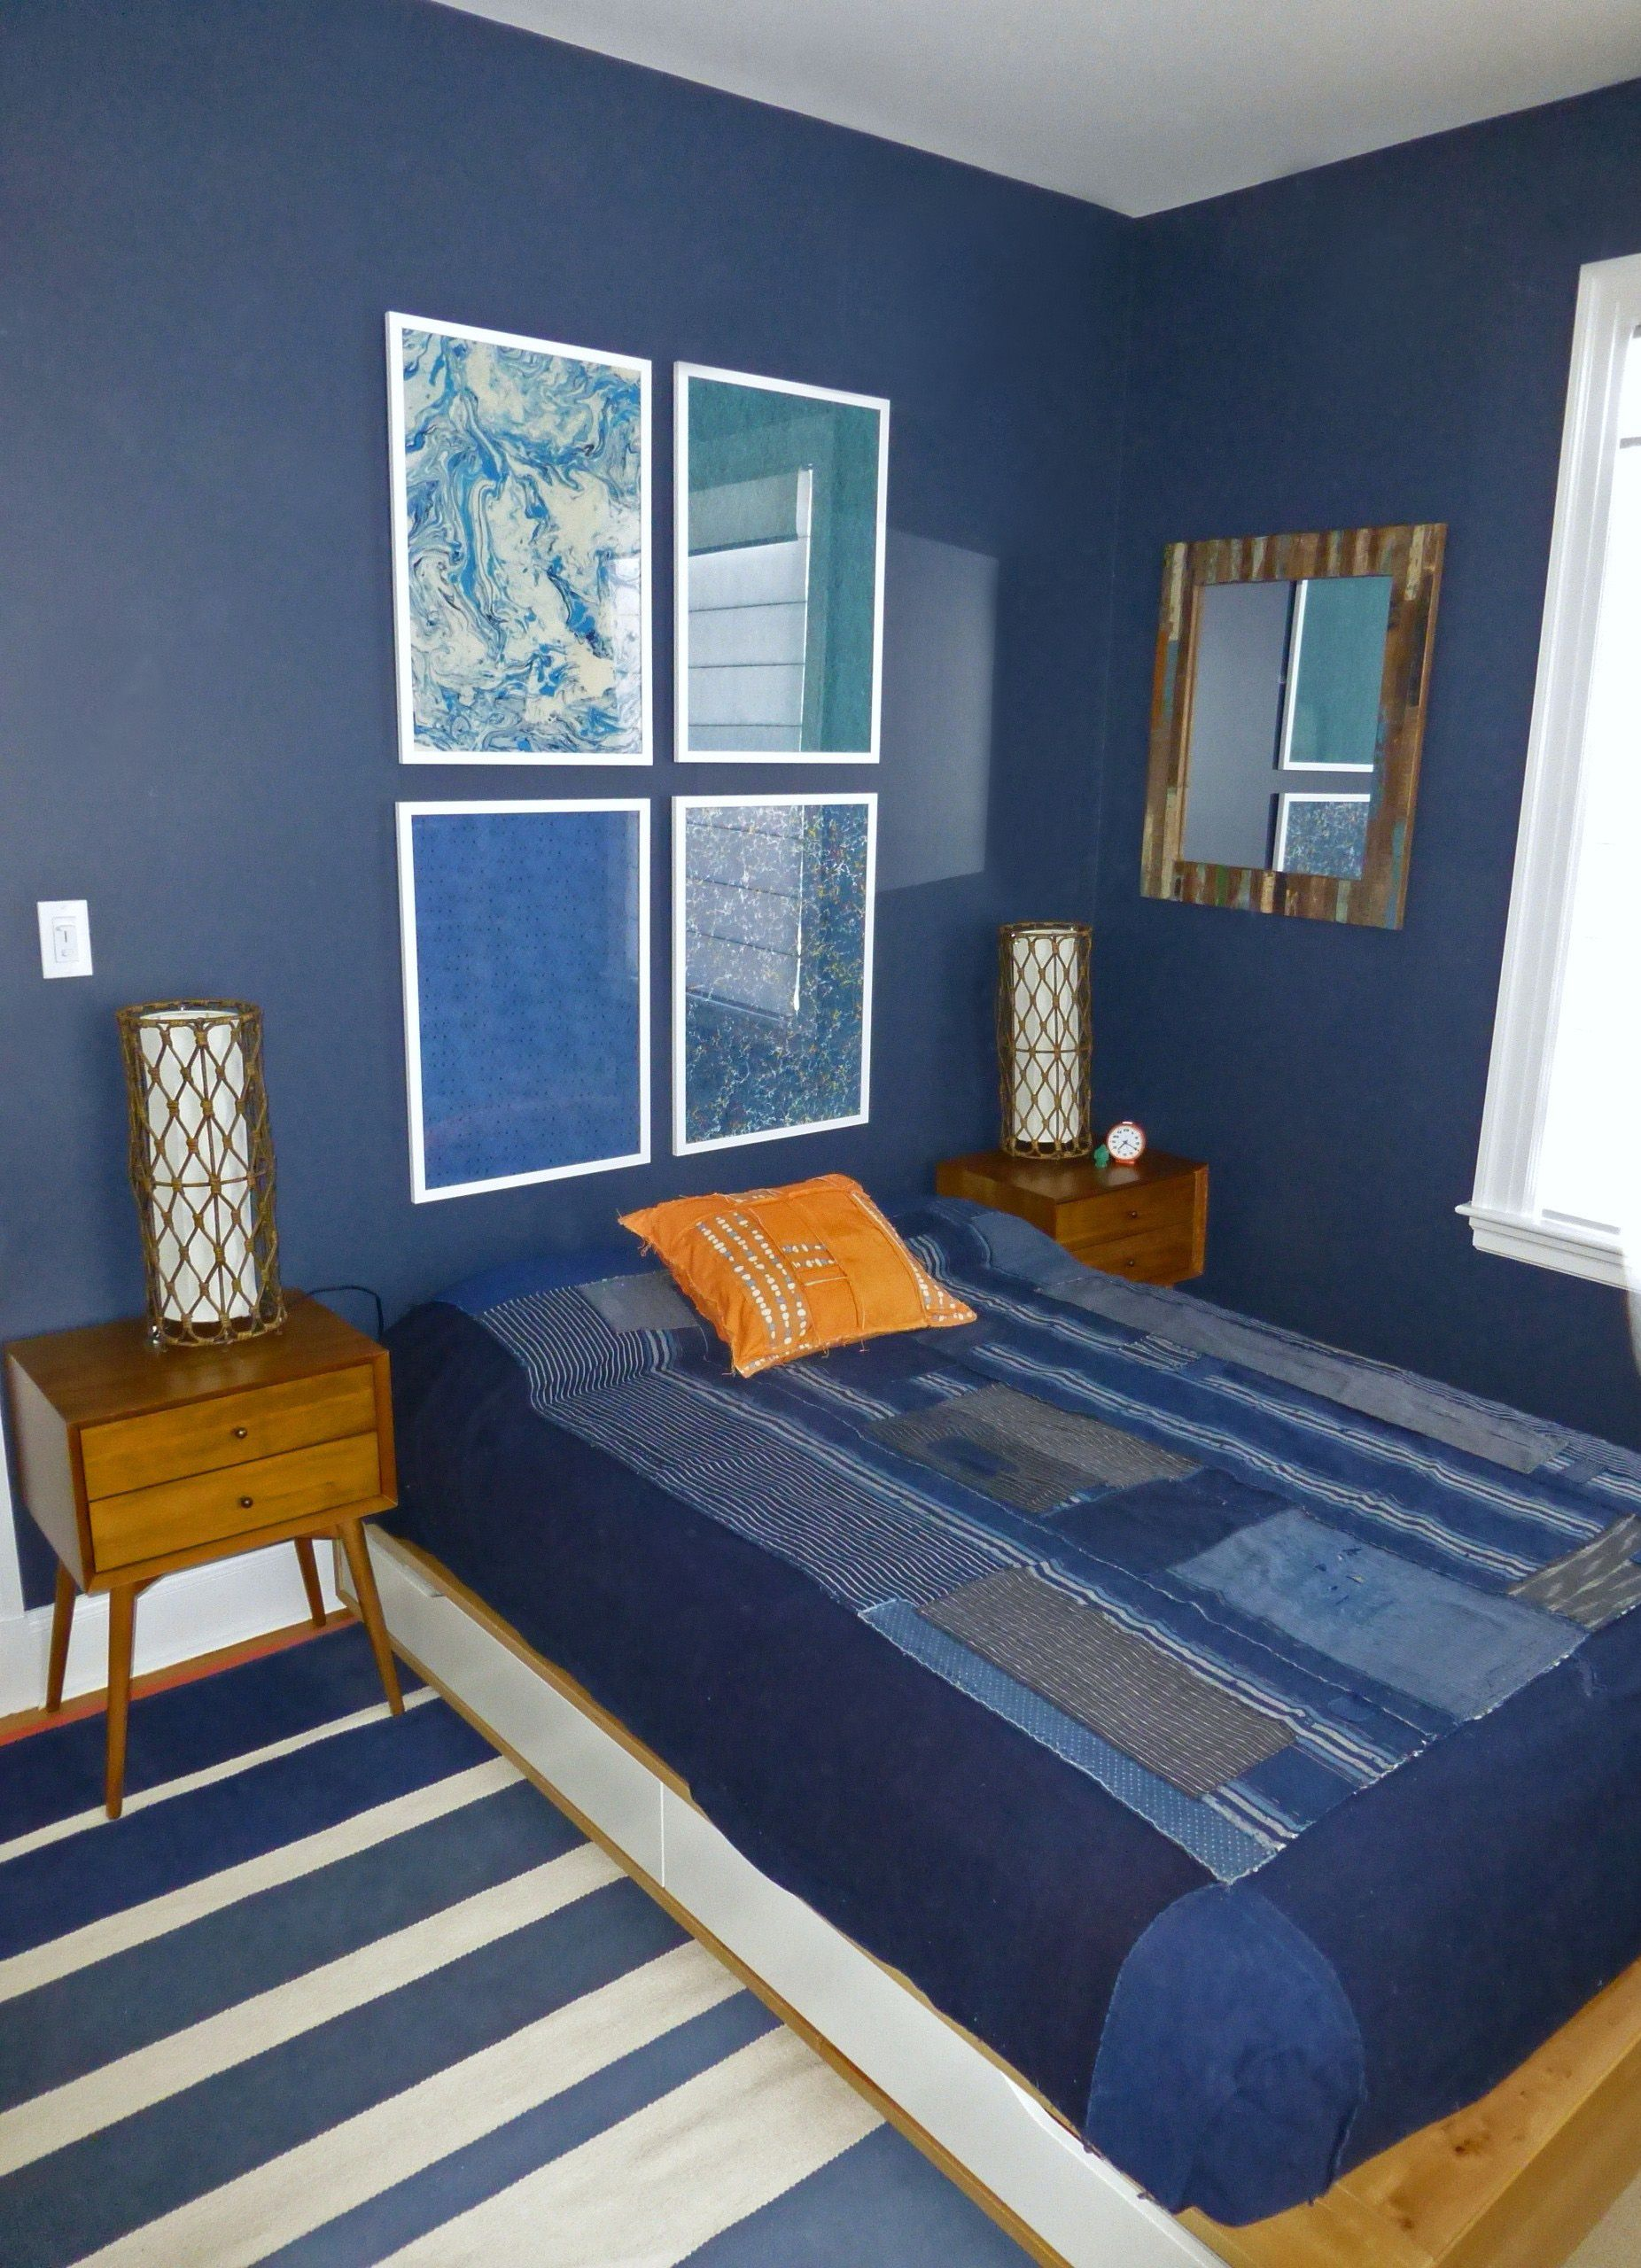 Blue bedroom designs for men - Young Man S Bedroom In Benjamin Moore Hale Navy Walls With Japanese Boro Textile Bedspread